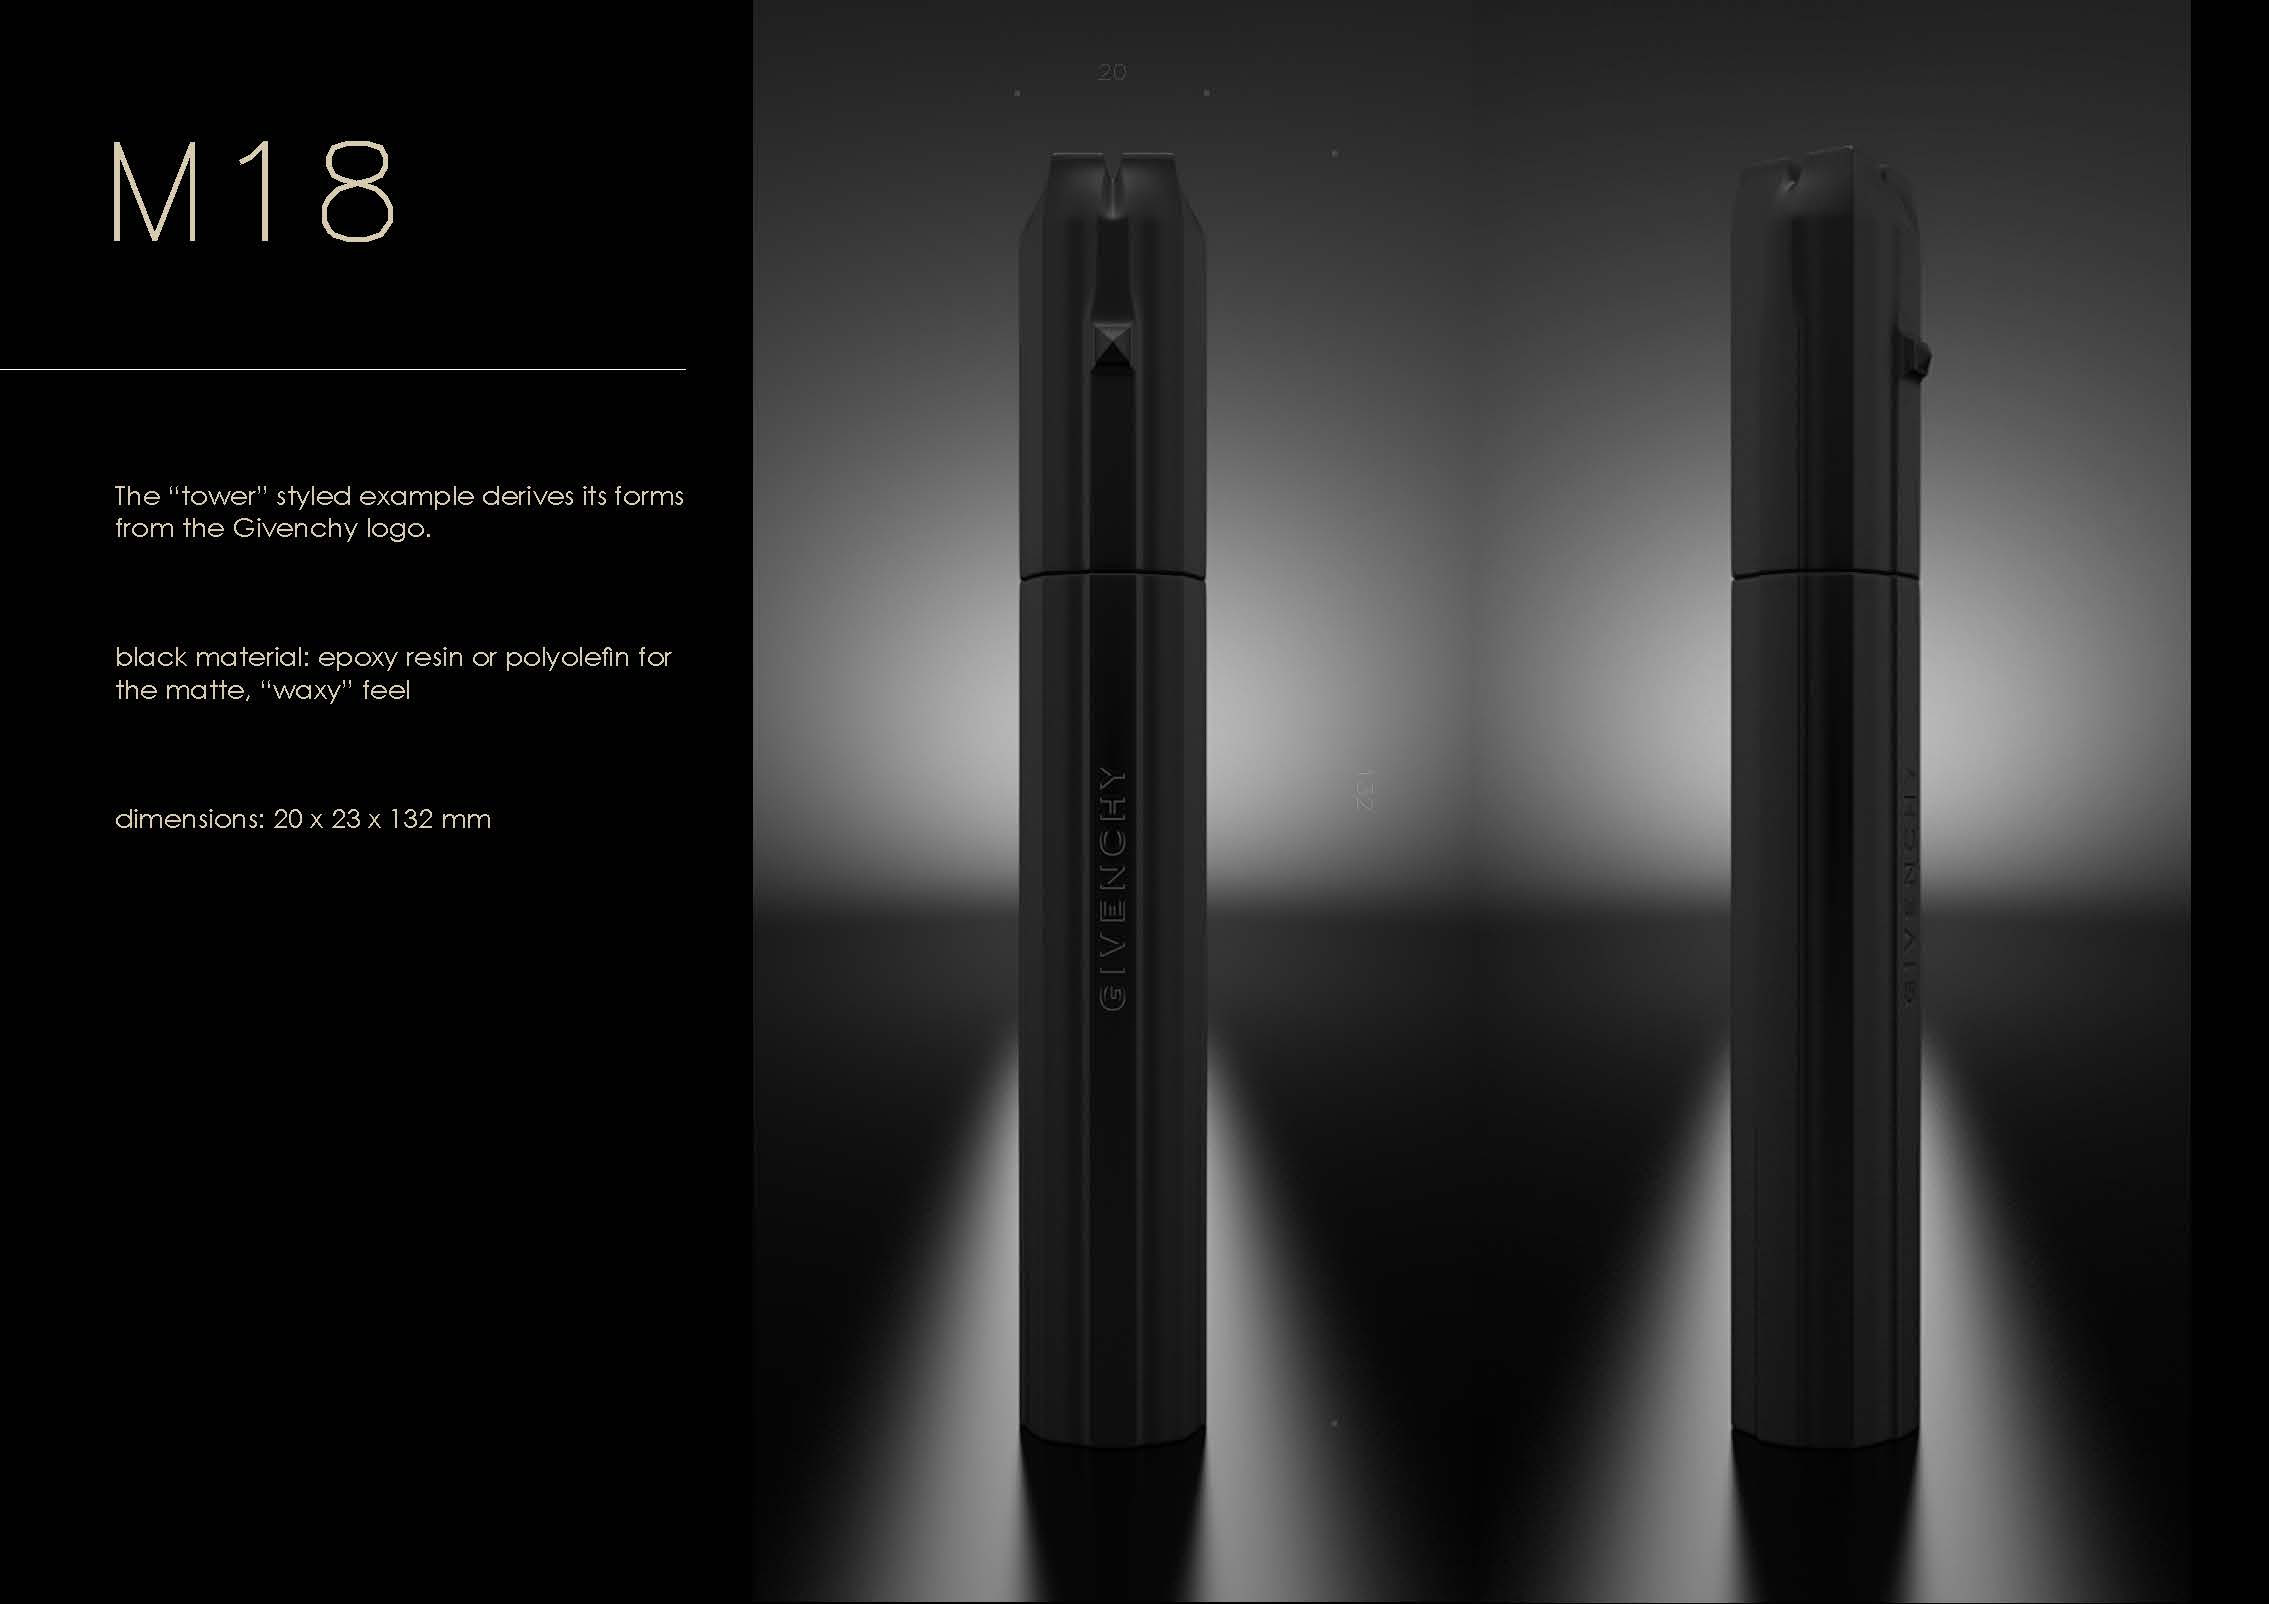 Givenchy mascaras w dimensions, I_Page_40.jpg